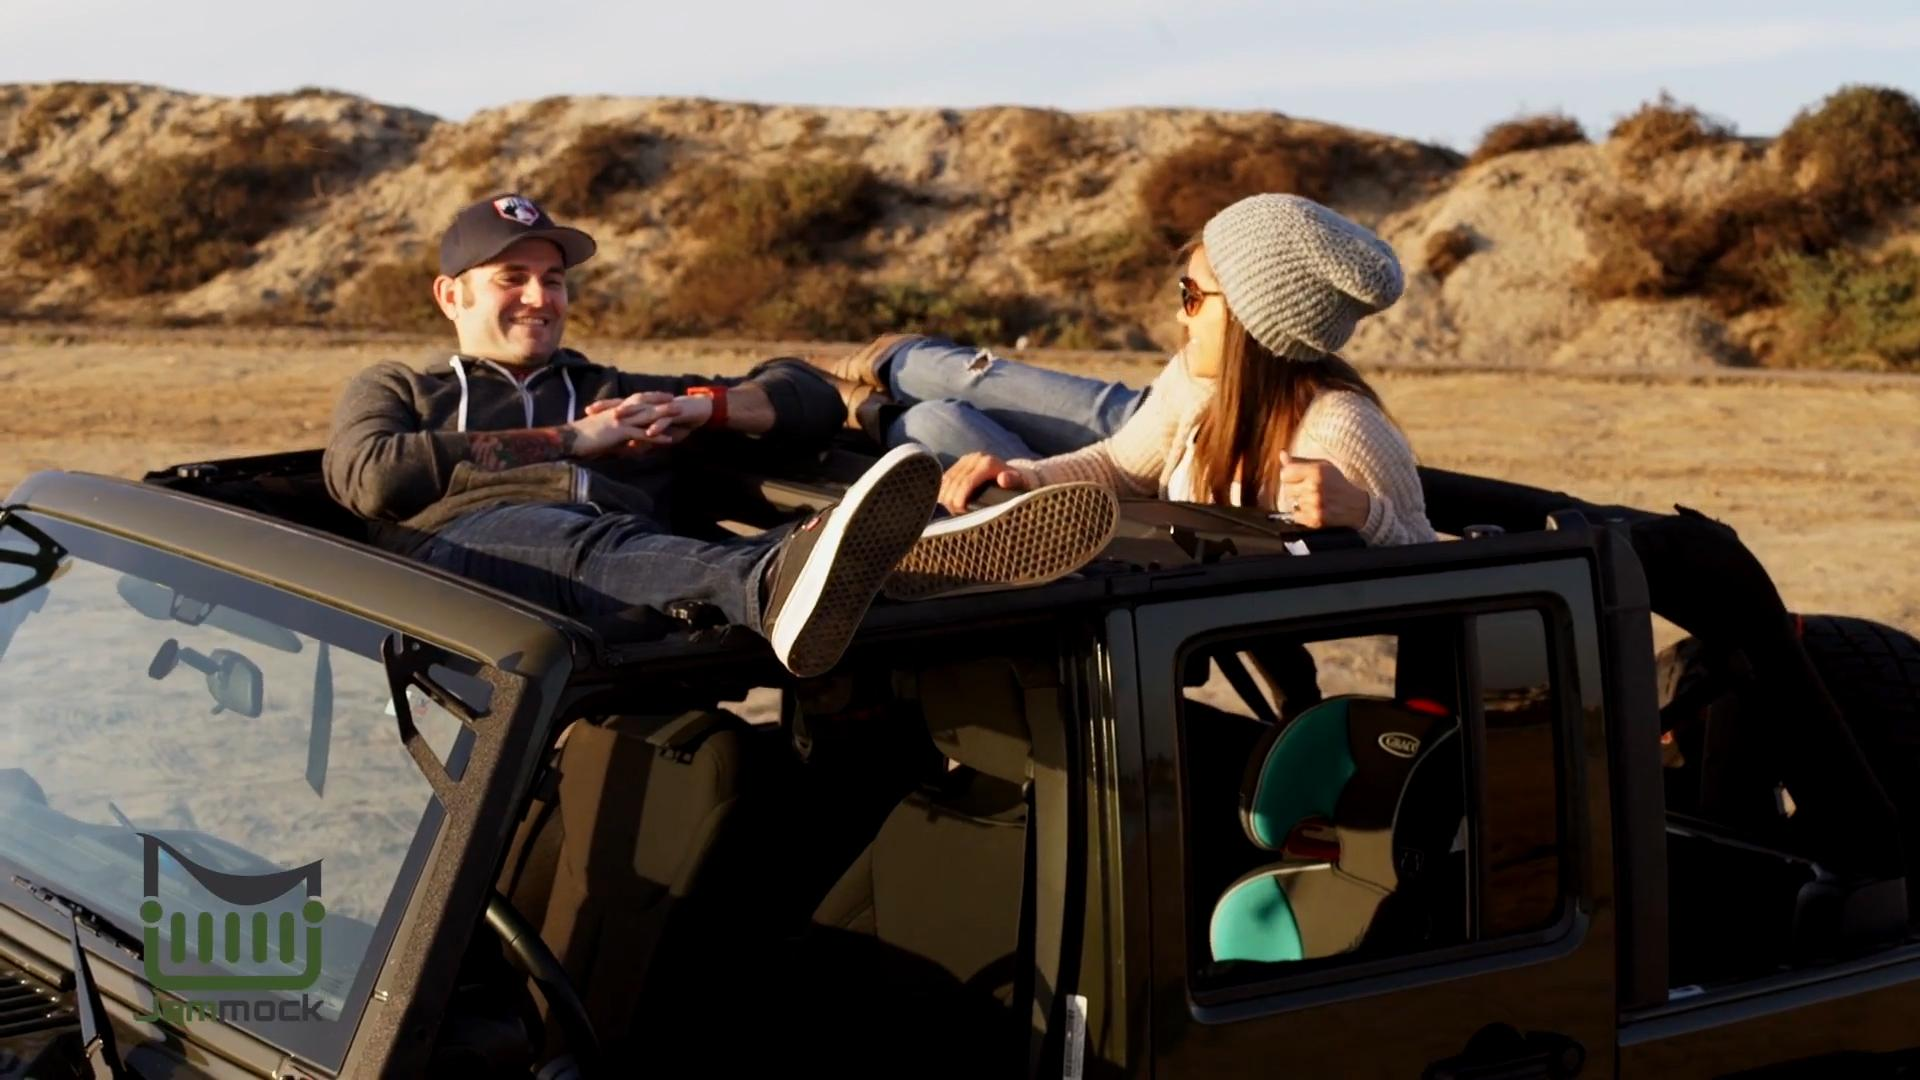 This hammock could be the perfect accessory for your Jeep